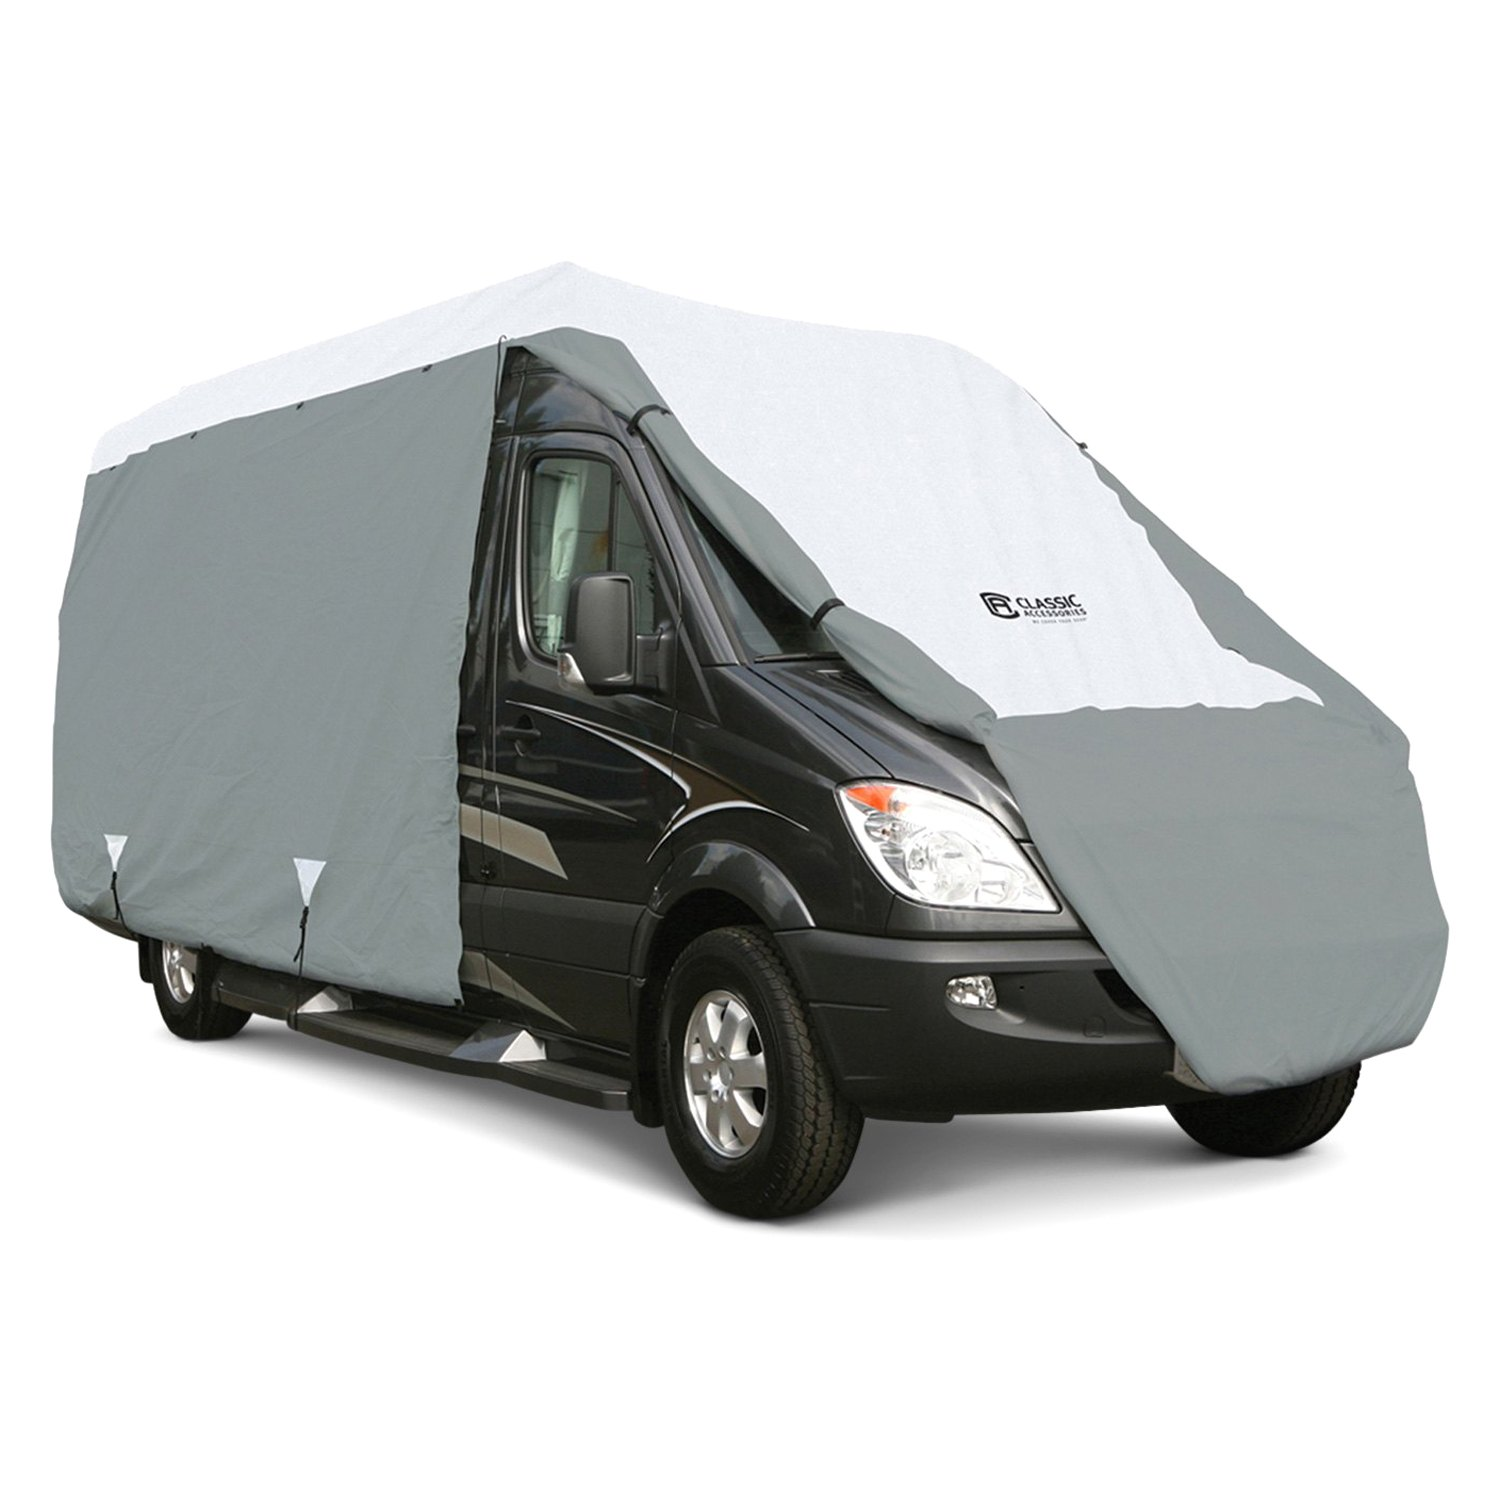 Classic Accessories Polypro 3 Class B Rv Cover